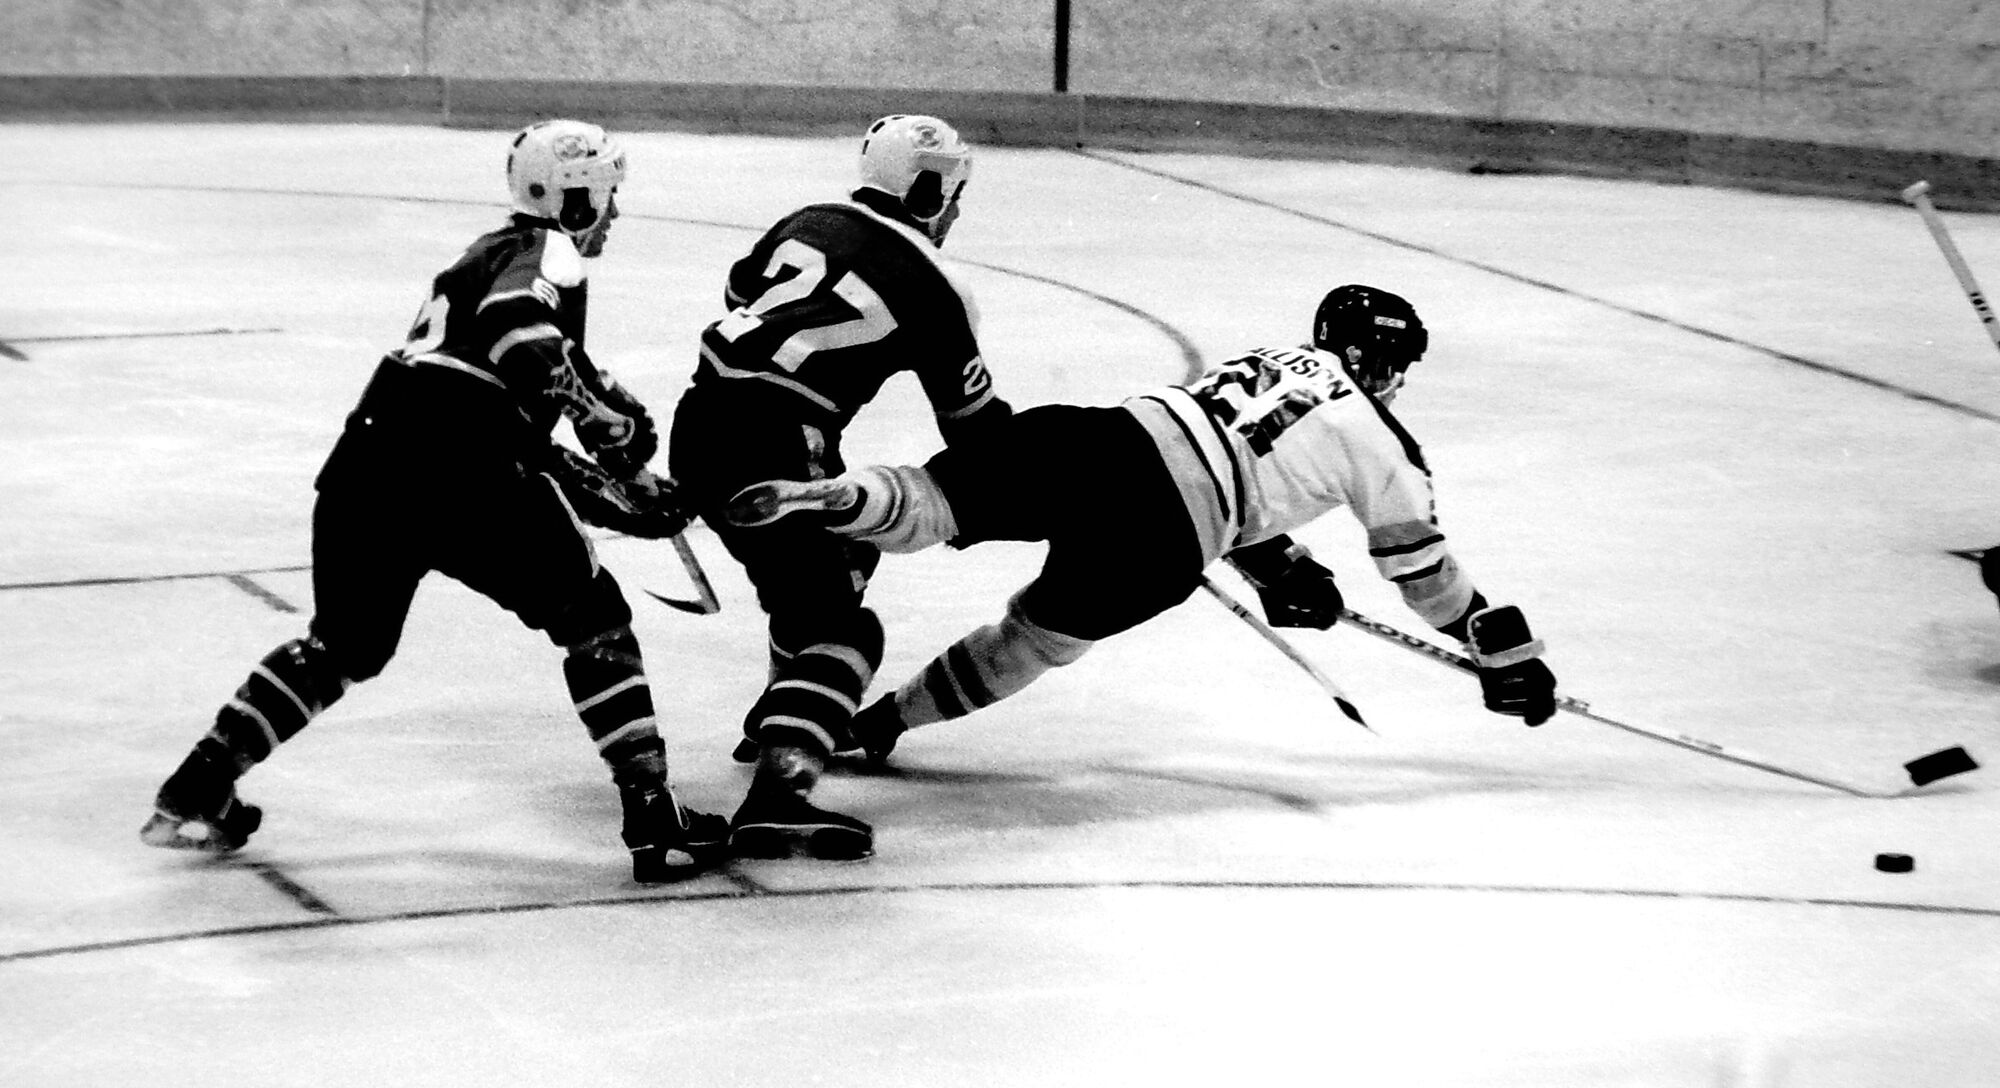 Ray Allison is the only player in WHL history to finish second in league scoring three years in a row.